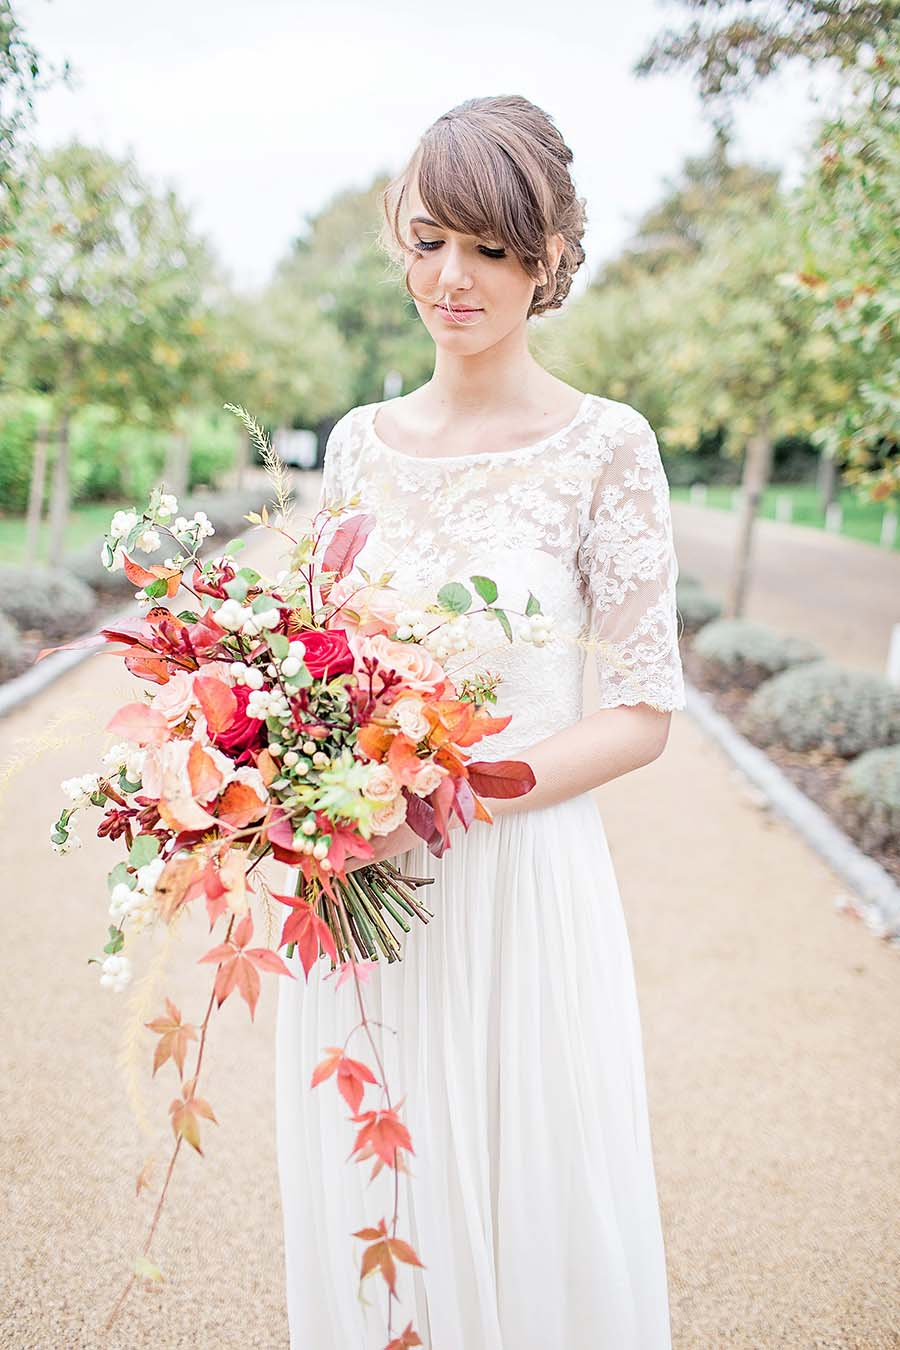 An Autumn Romance! Soft Rose & Autumnal Hues Wedding Inspiration